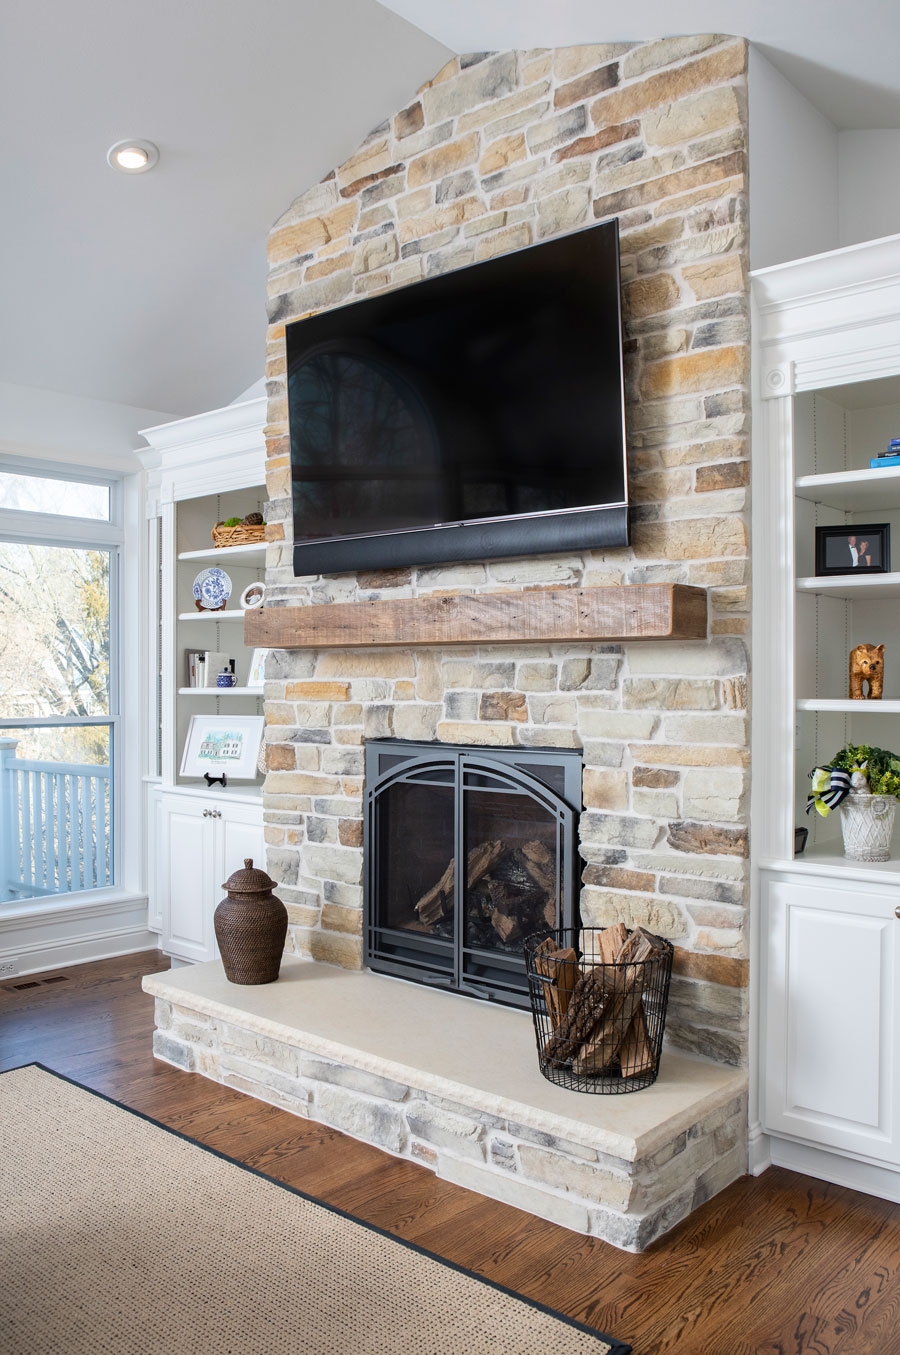 Roeser-Home-Remodeling-St-Louis-home-fireplace-remodel-2-Holley